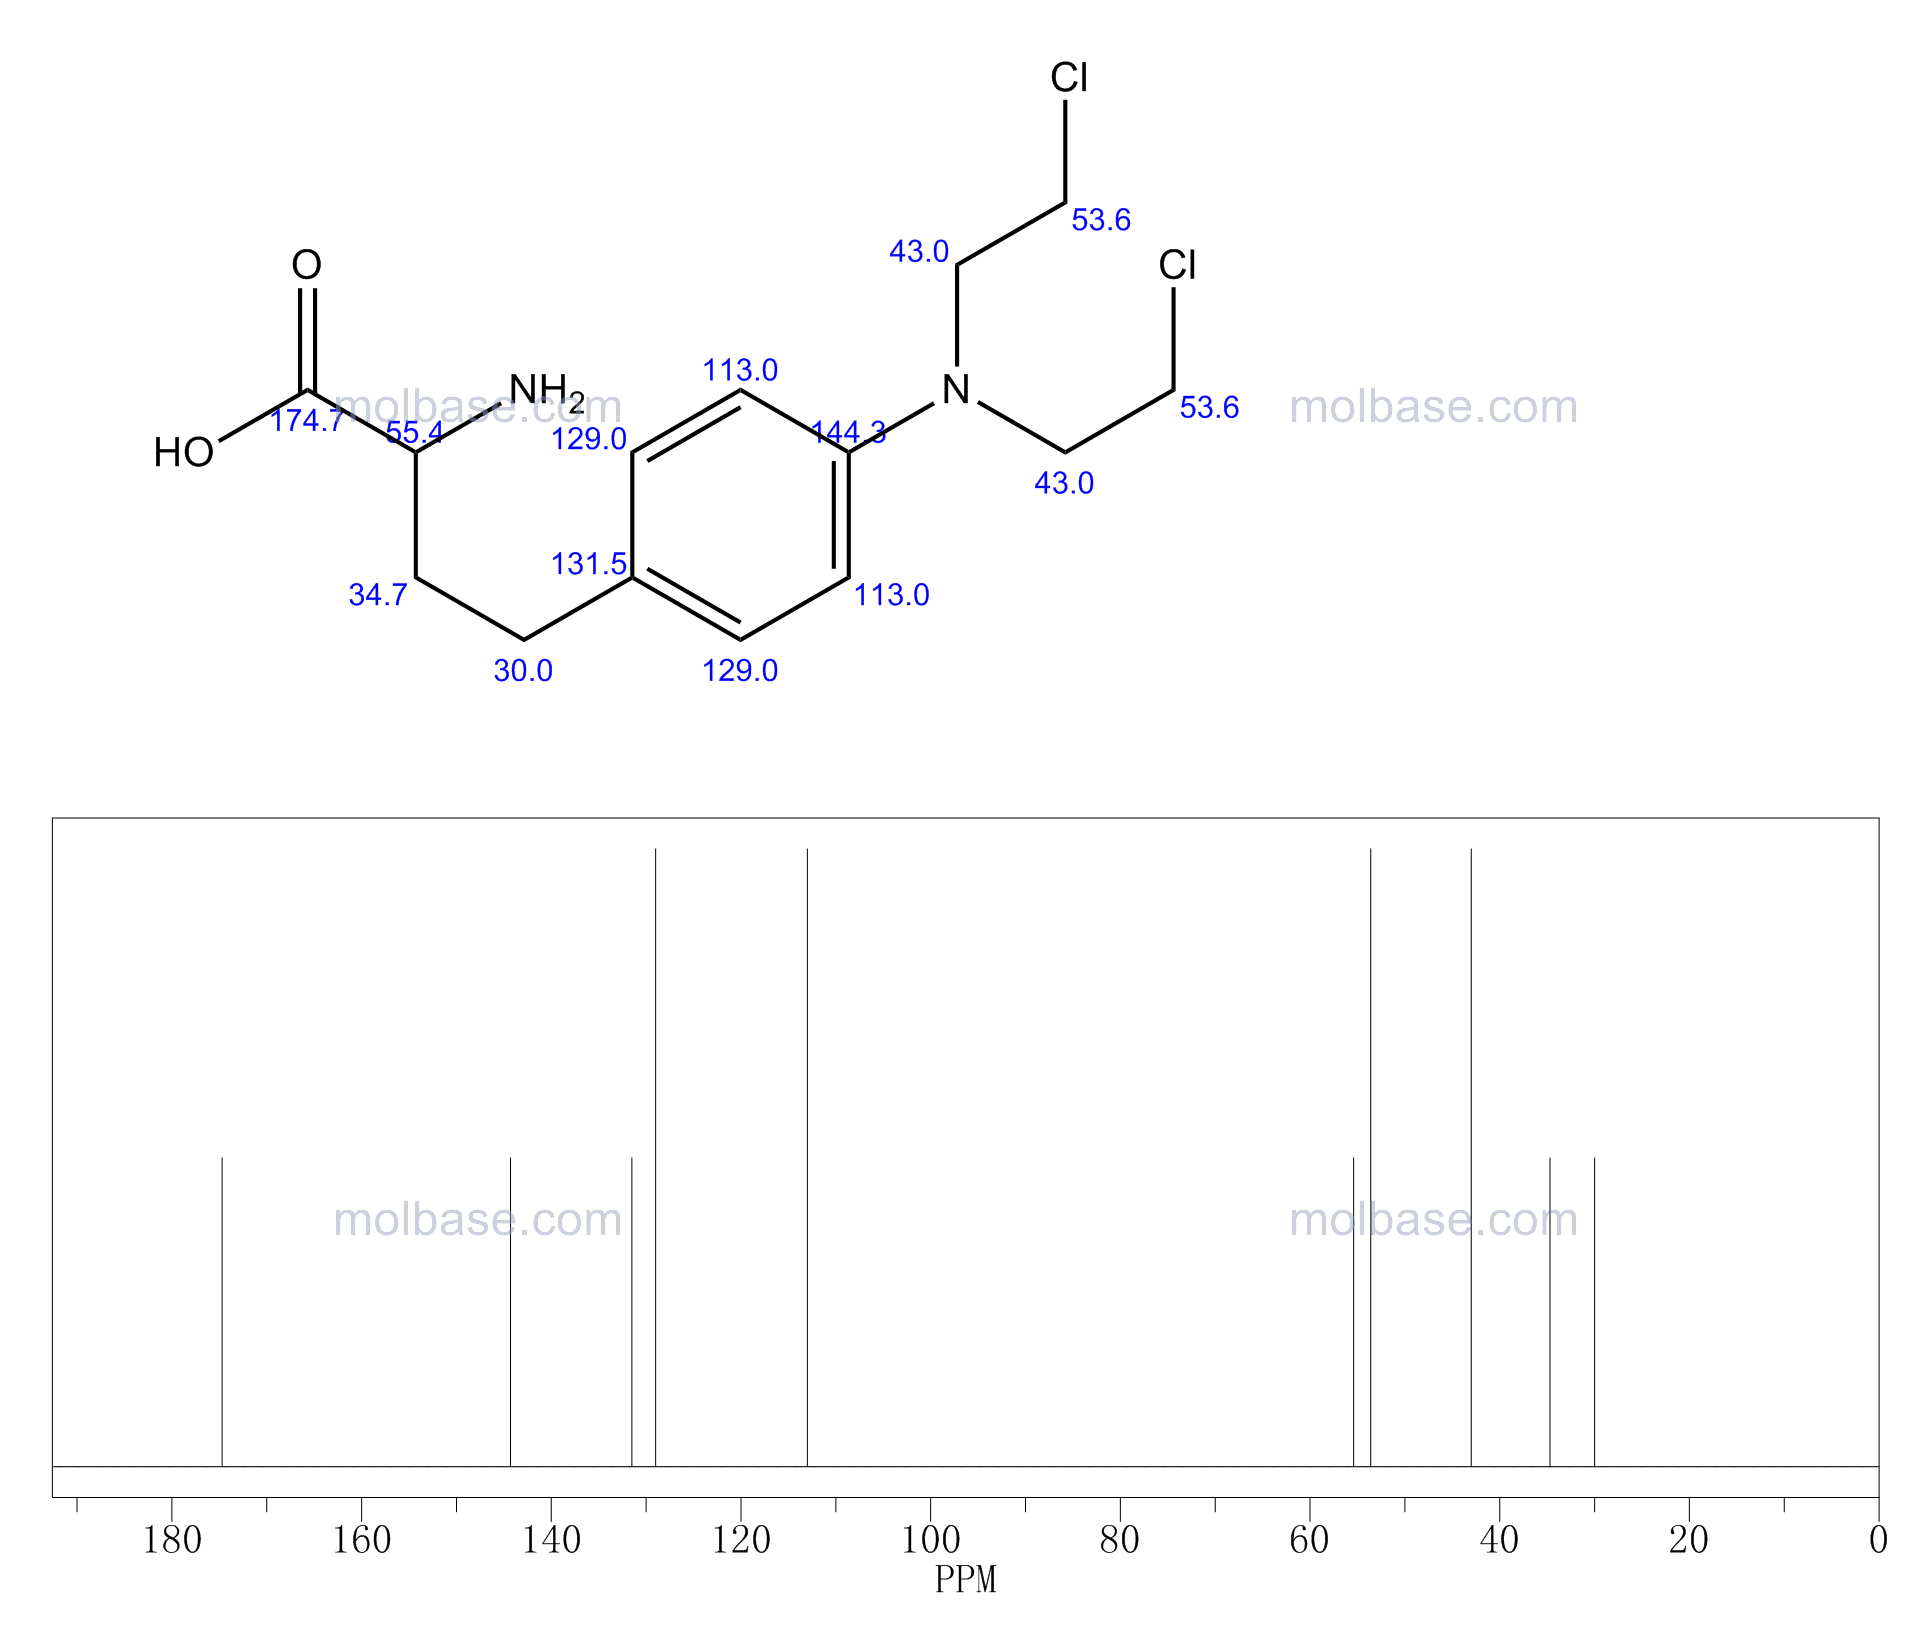 2-amino-4-[4-[bis(2-chloroethyl)amino]phenyl]butanoic acid NMR spectra analysis, Chemical CAS NO. 3688-35-5 NMR spectral analysis, 2-amino-4-[4-[bis(2-chloroethyl)amino]phenyl]butanoic acid C-NMR spectrum